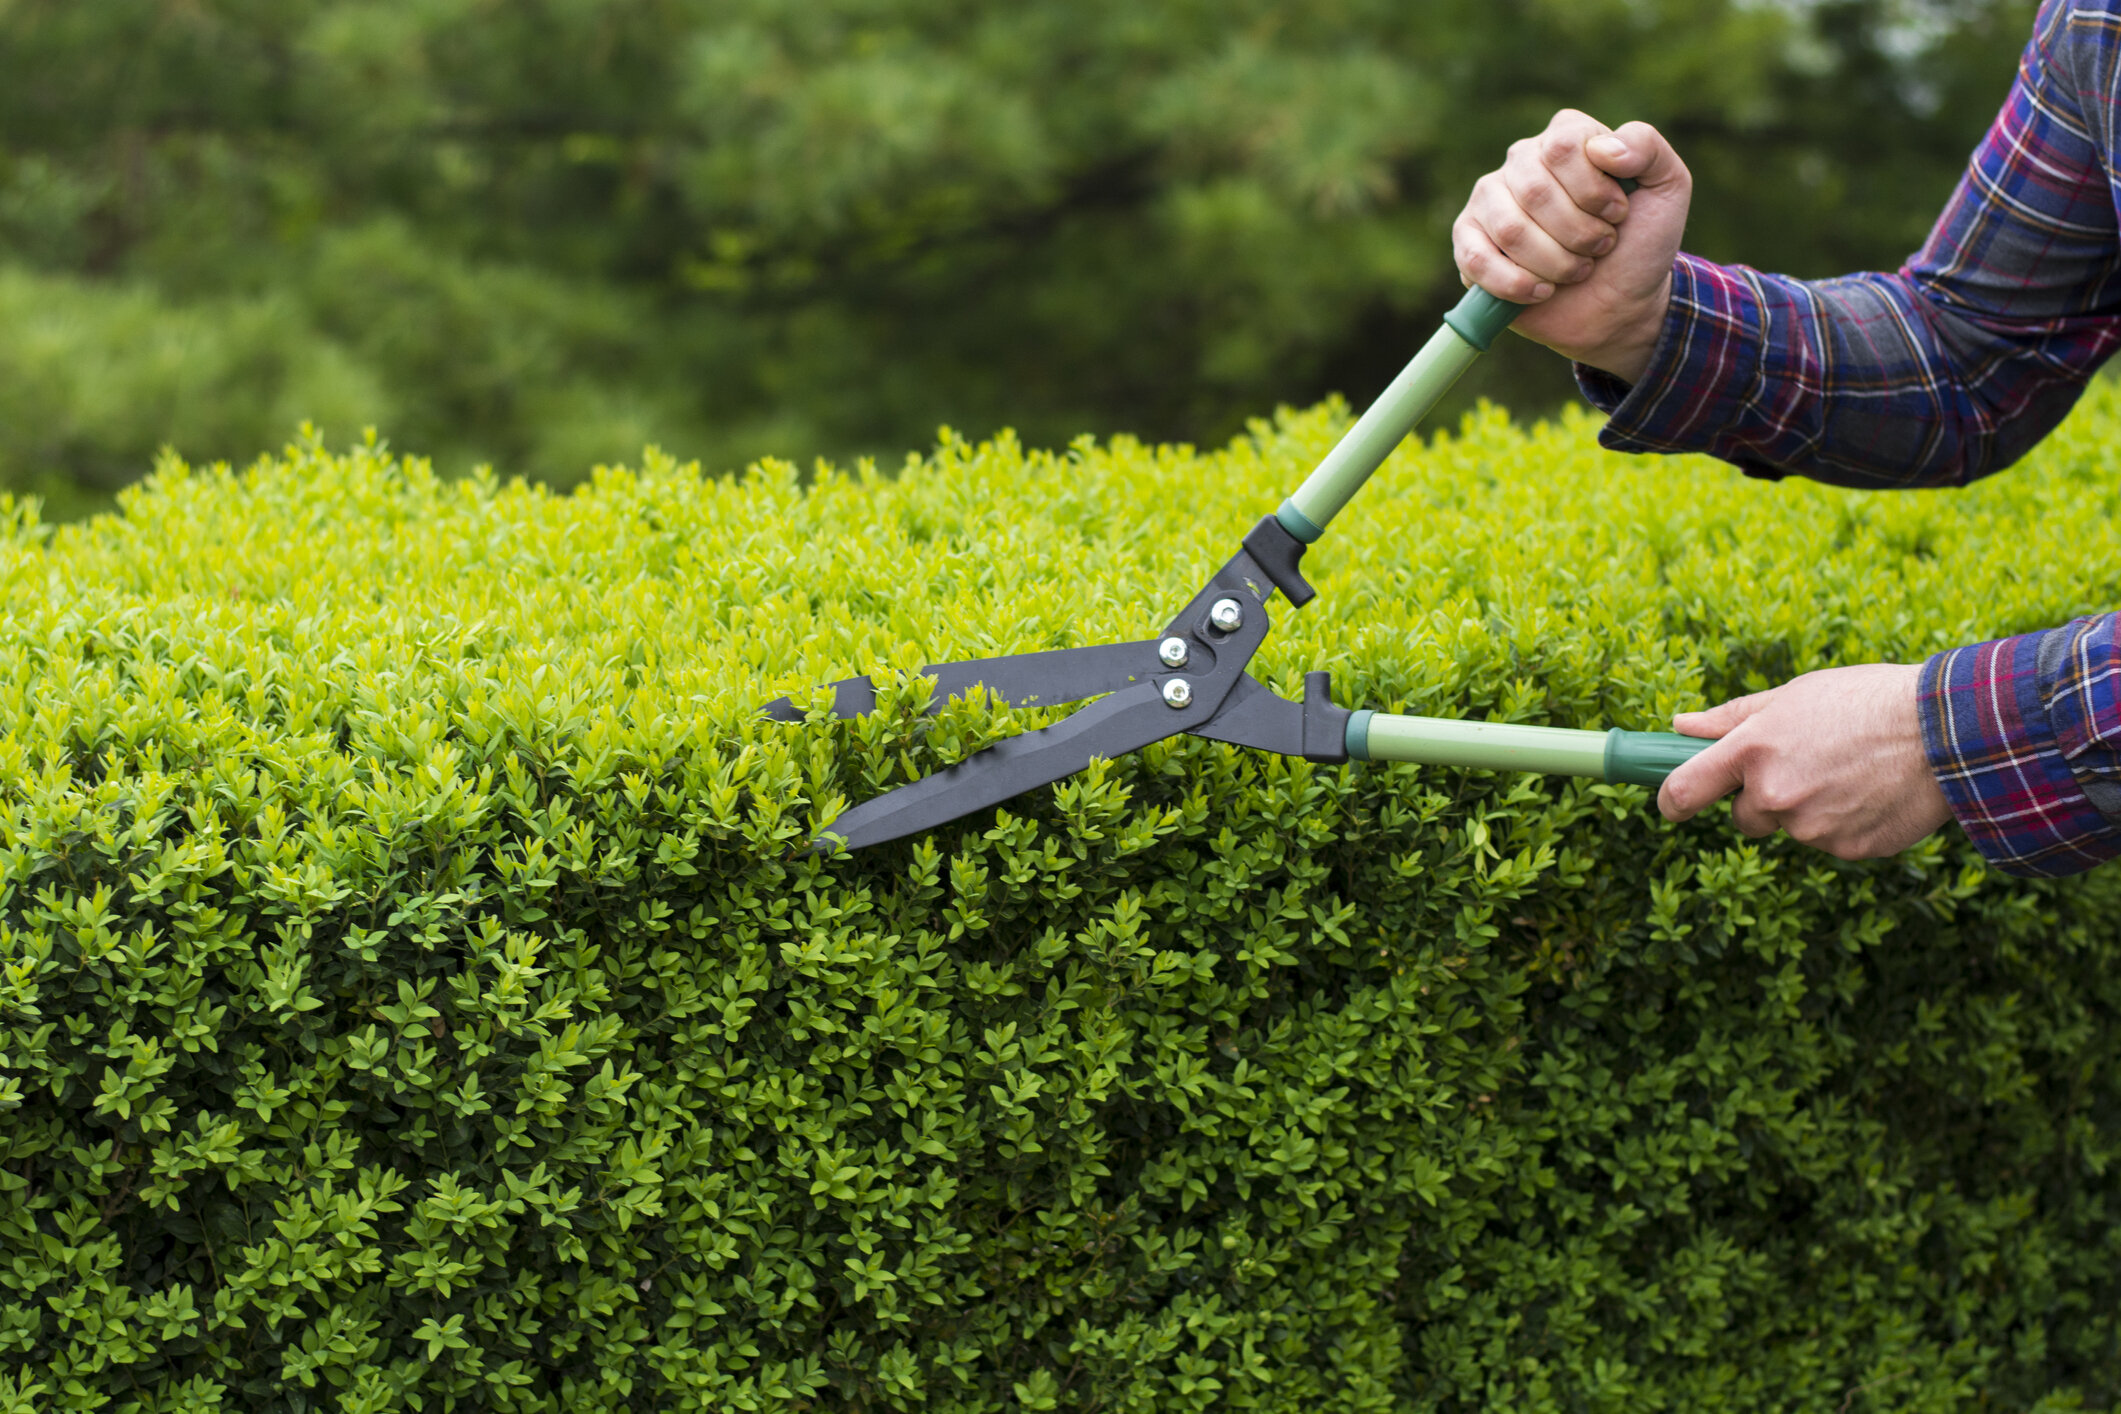 Shears are necessary for formal hedges.